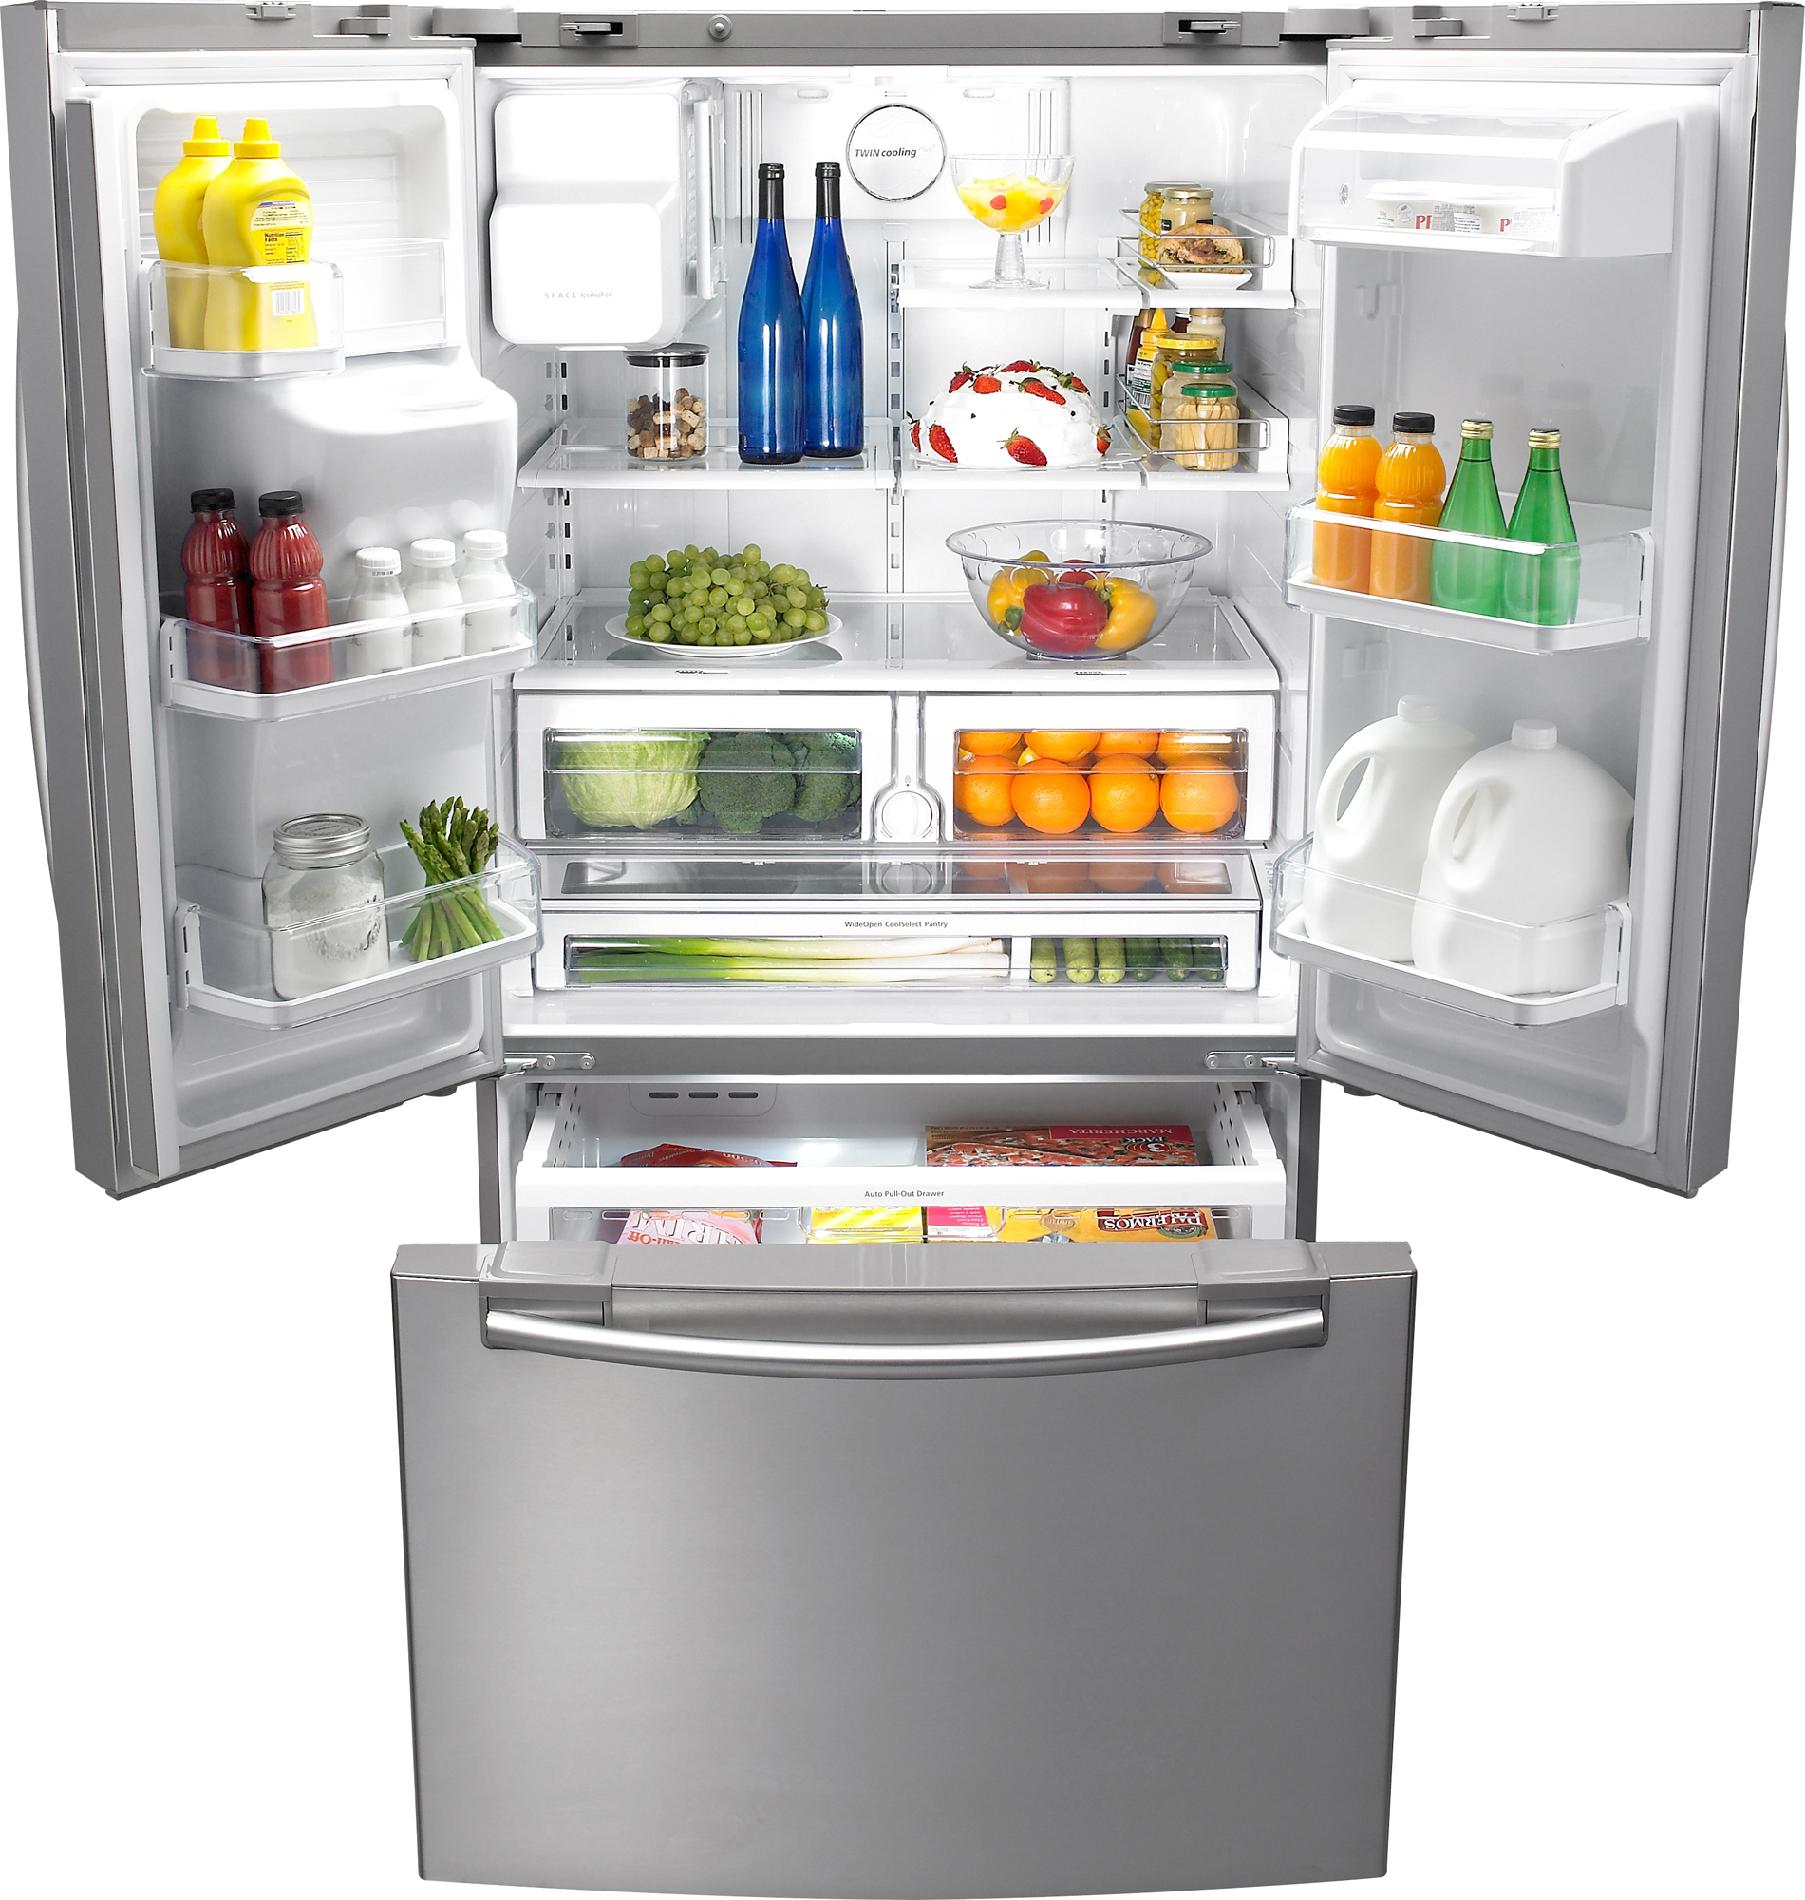 Samsung 29 cu. ft. French Door Refrigerator - Stainless Steel